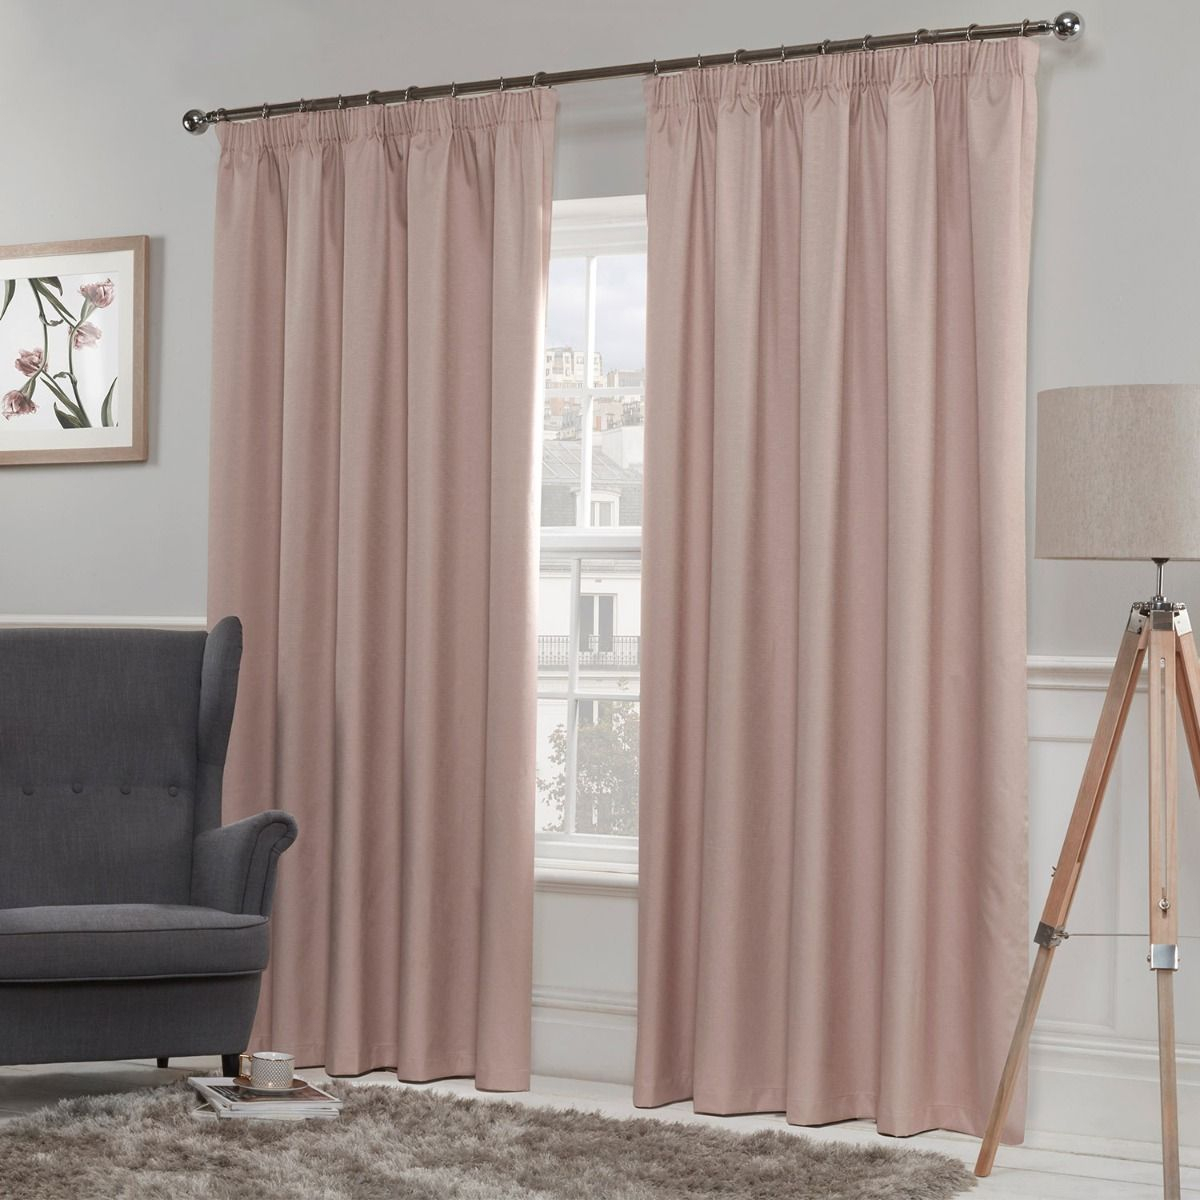 Luna Blush Luxury Thermal Blackout Eyelet Curtains Inside All Seasons Blackout Window Curtains (View 19 of 20)